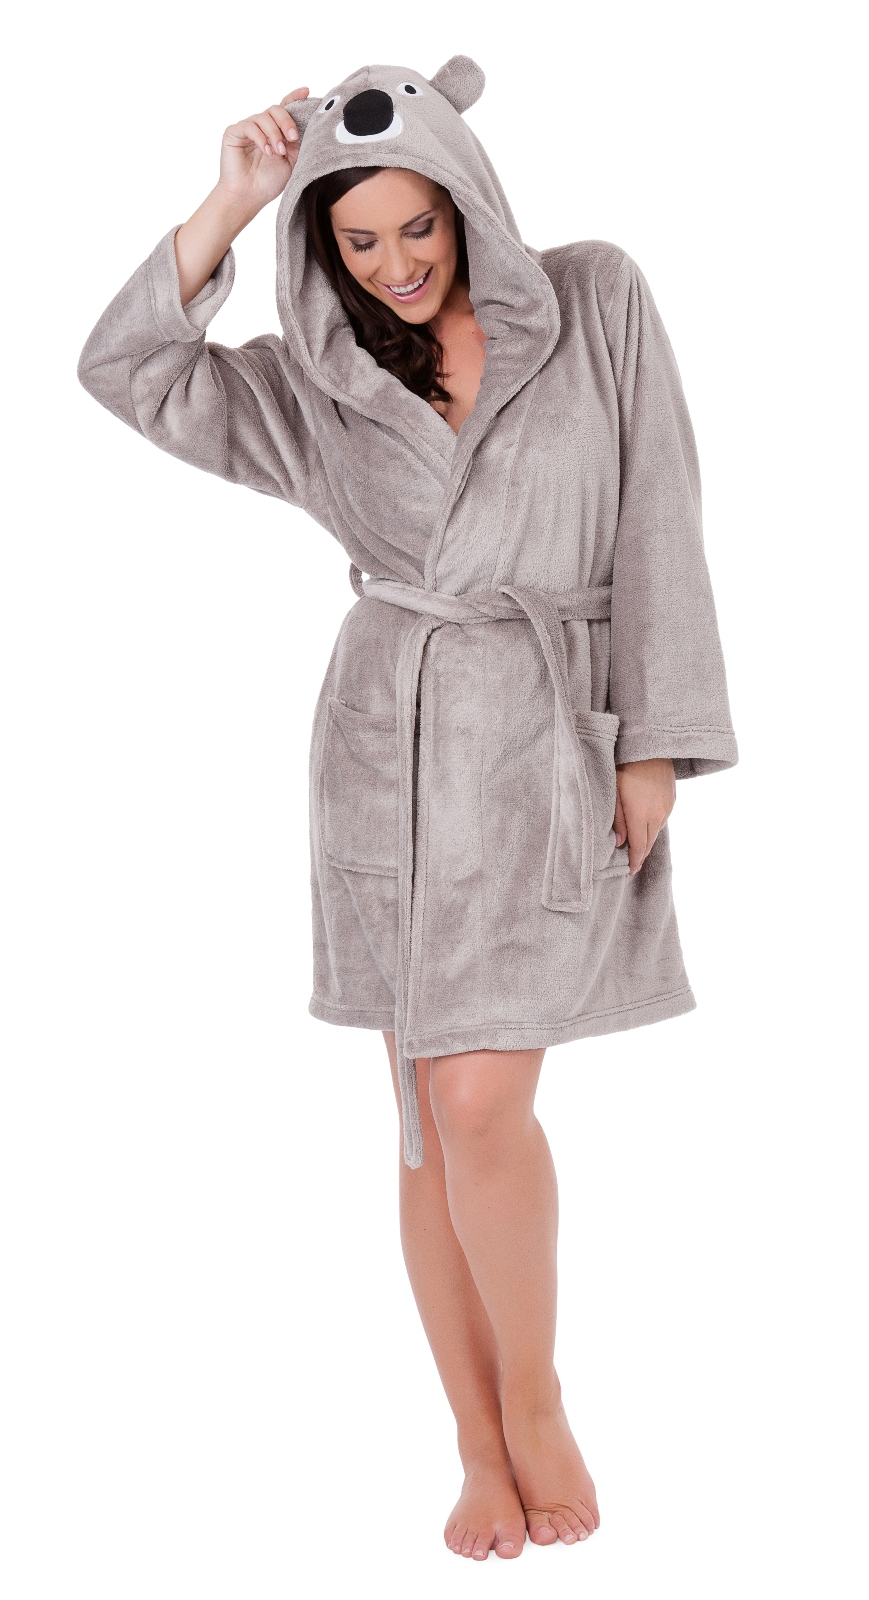 b1dbcbca20 WOMENS HOODED SHORT BATH ROBE DRESSING GOWN HOUSECOAT WITH BELT ...